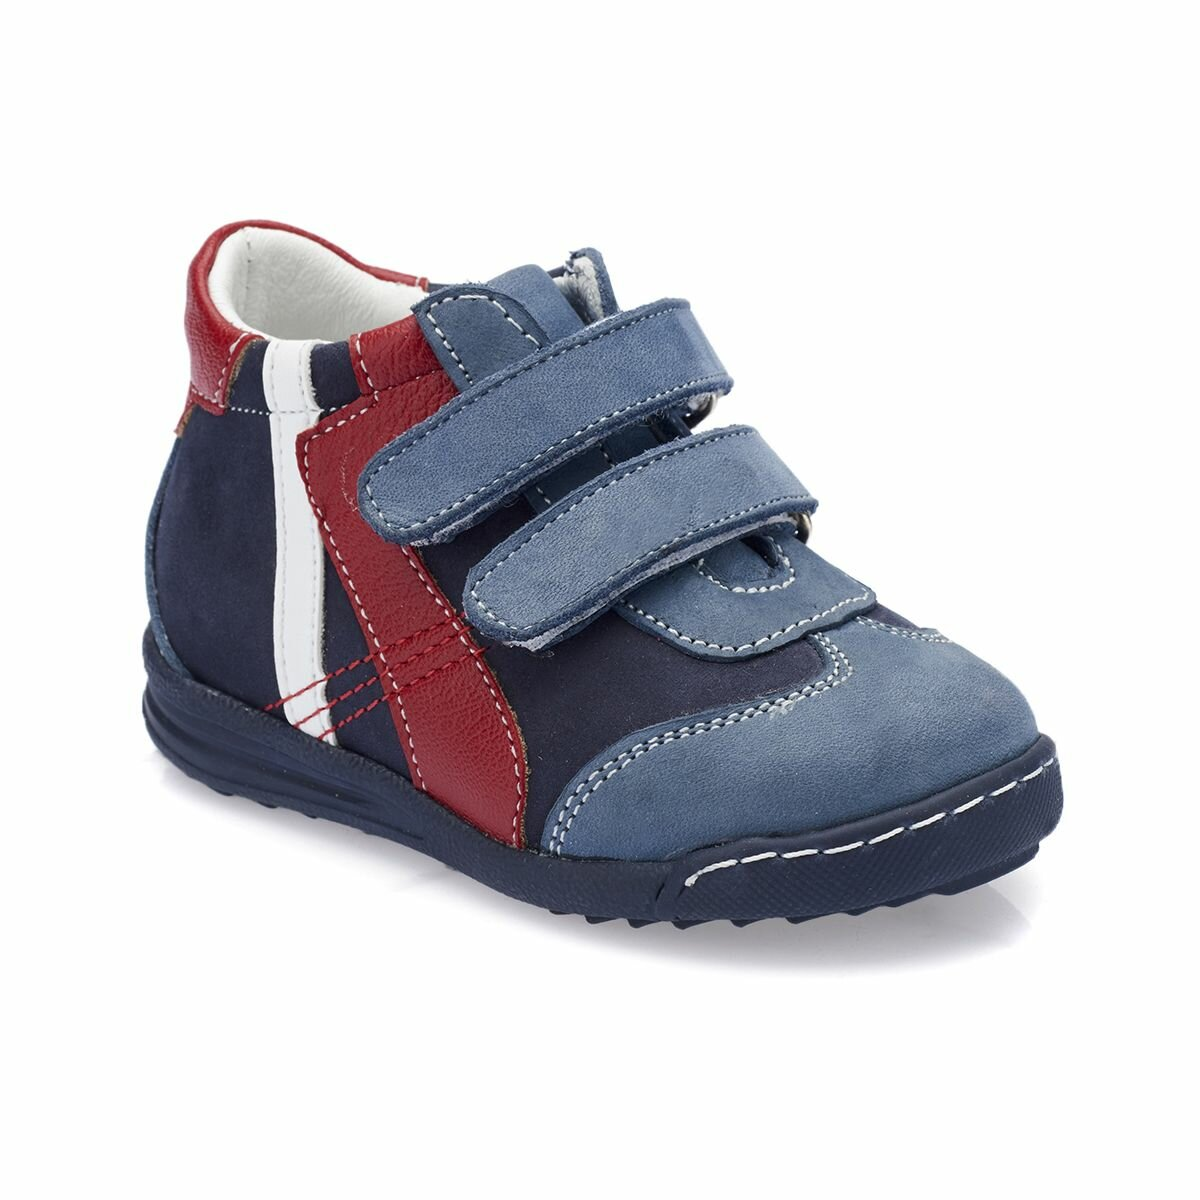 FLO 82.510898.I Navy Blue Male Child Boots Polaris